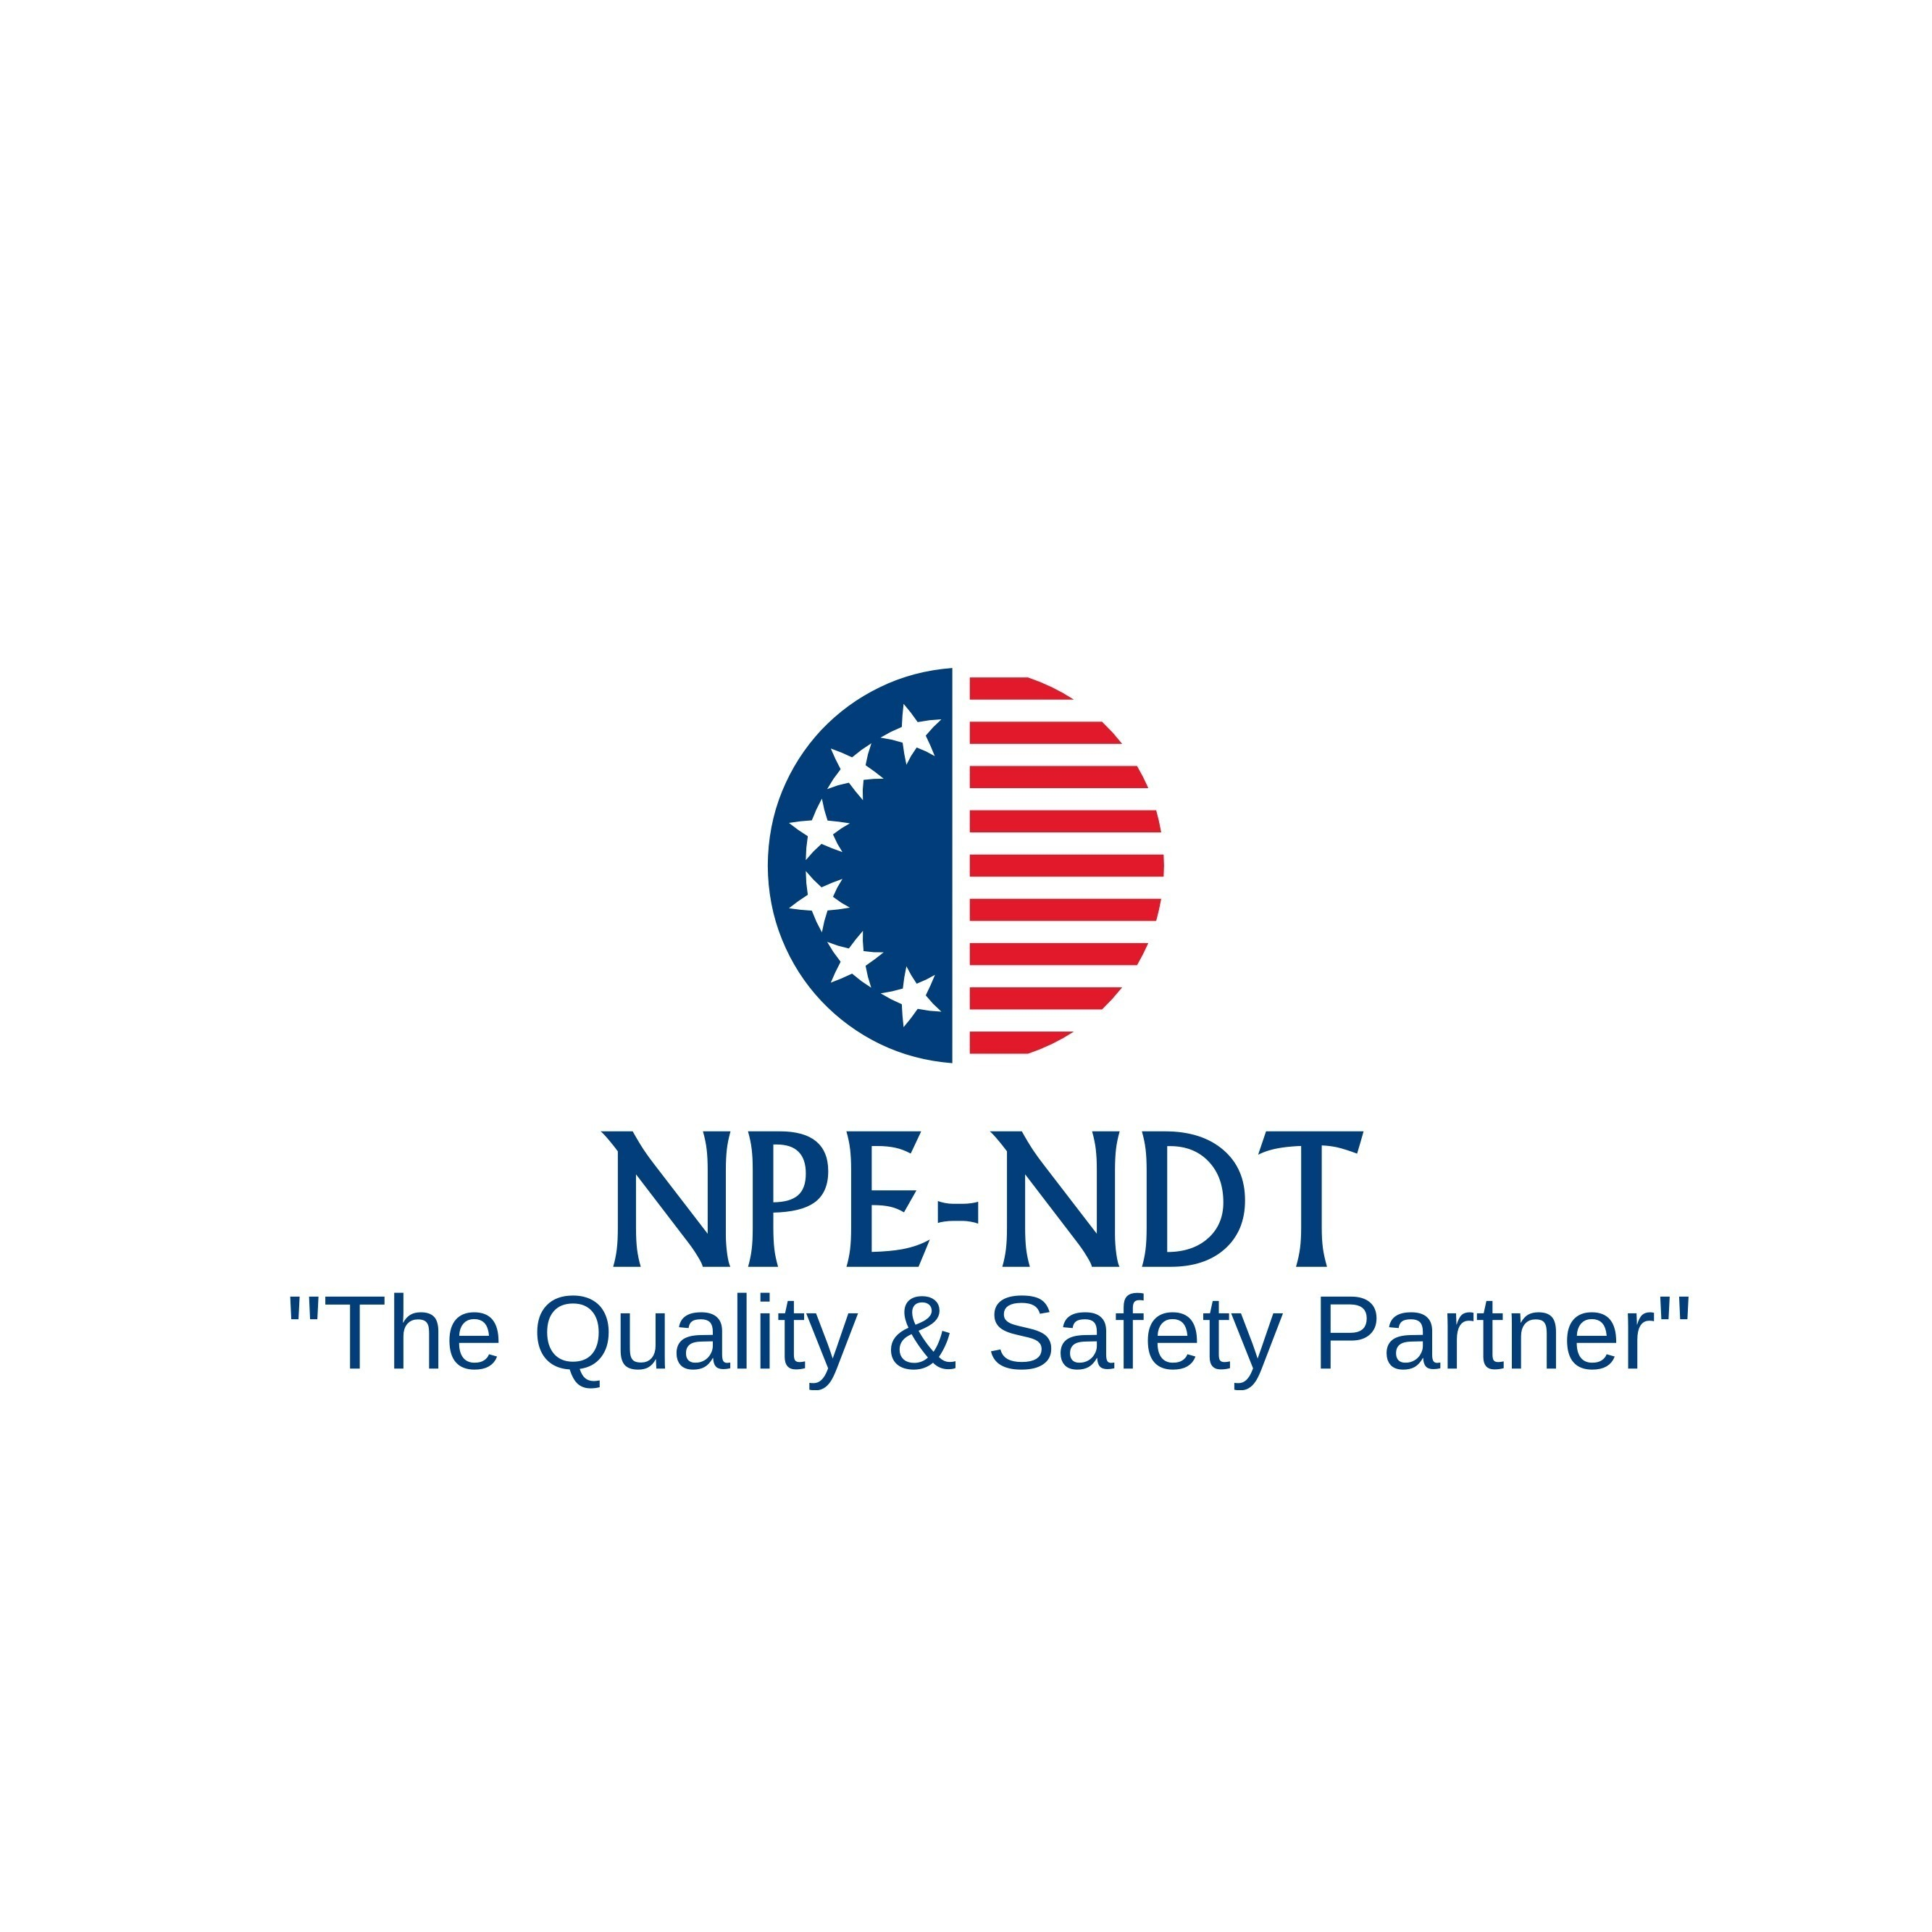 NPE-NDT ,NP Energy Services, LLC